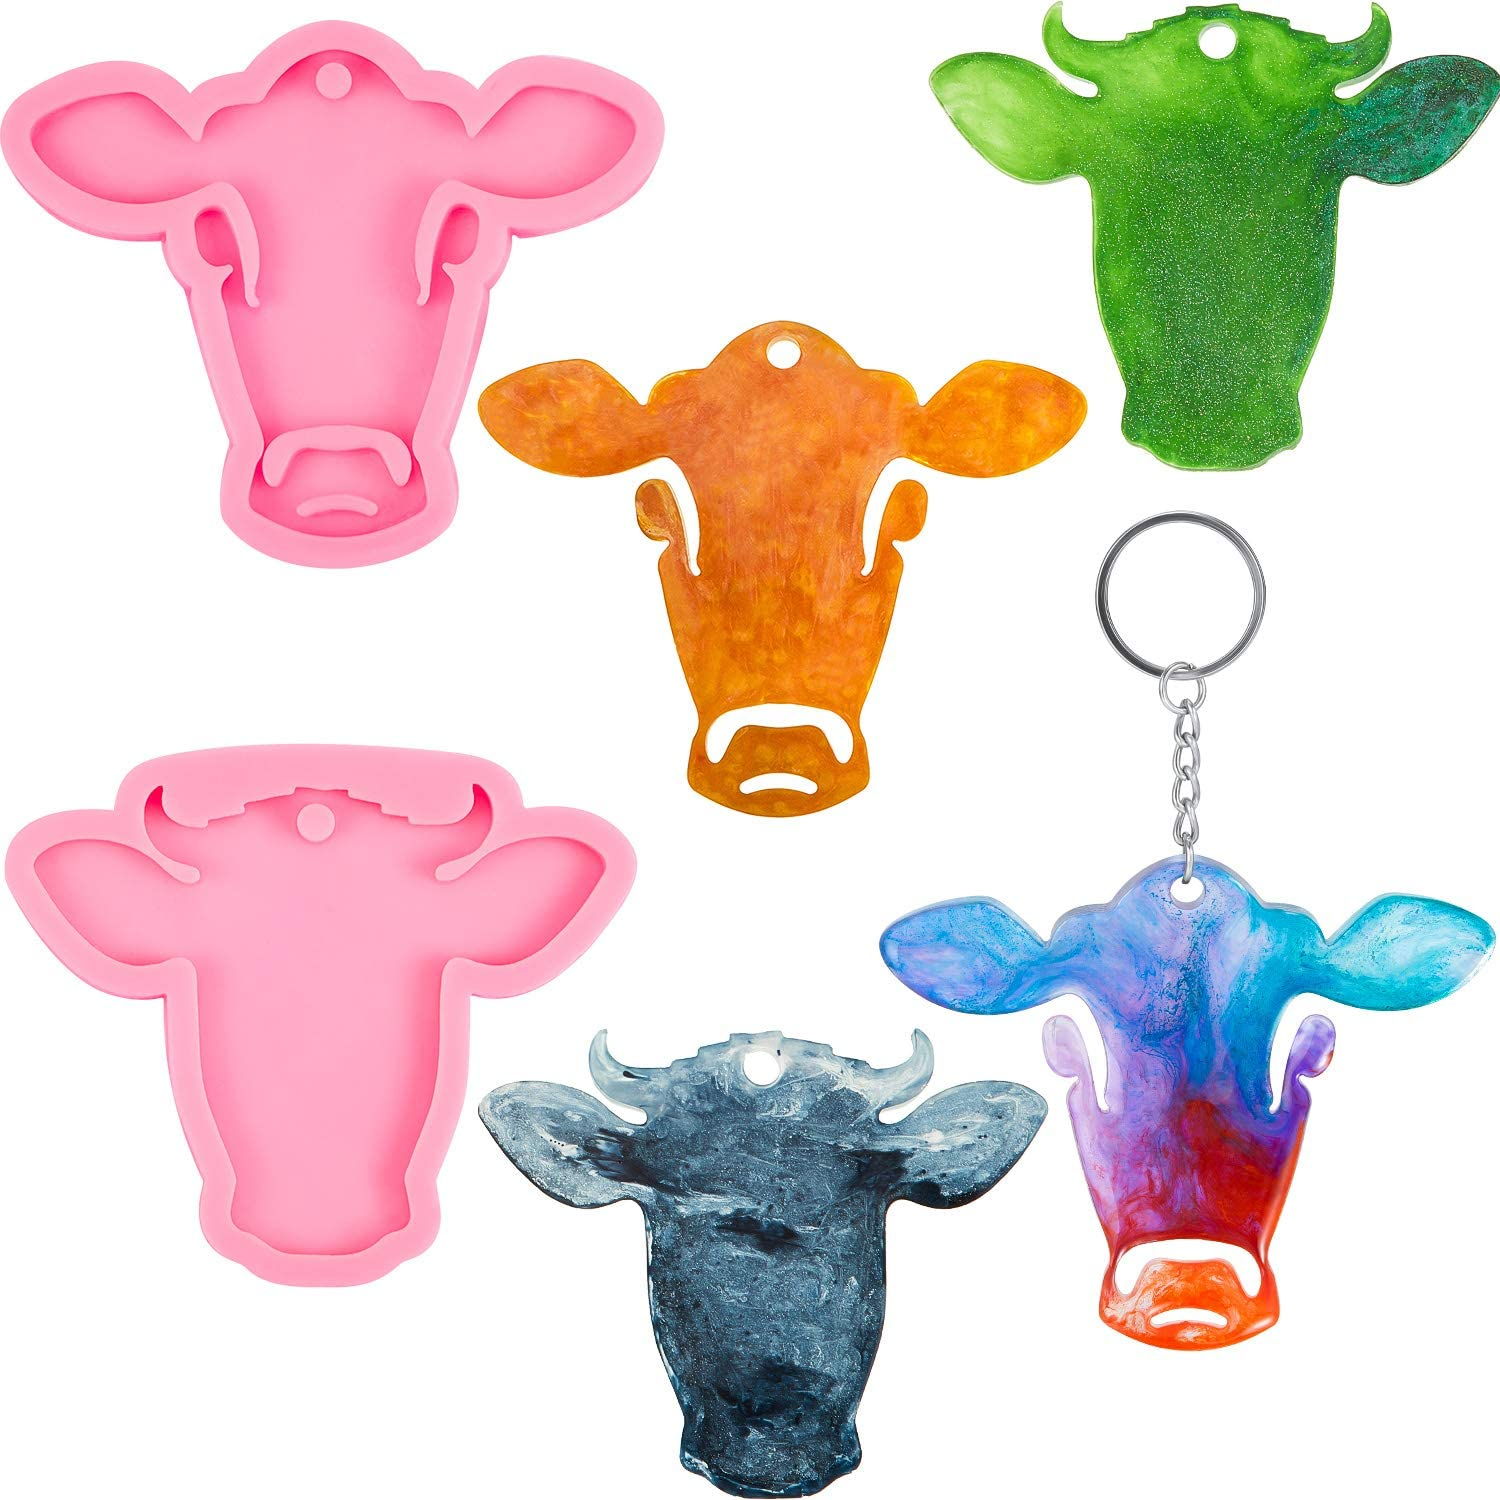 Cow tag silicone molds,Cow Tag Shiny Pink Silicone Key Chain Mold,3d Silicone fondant mold Design Mold,DIY Keychain,Custom Keychain